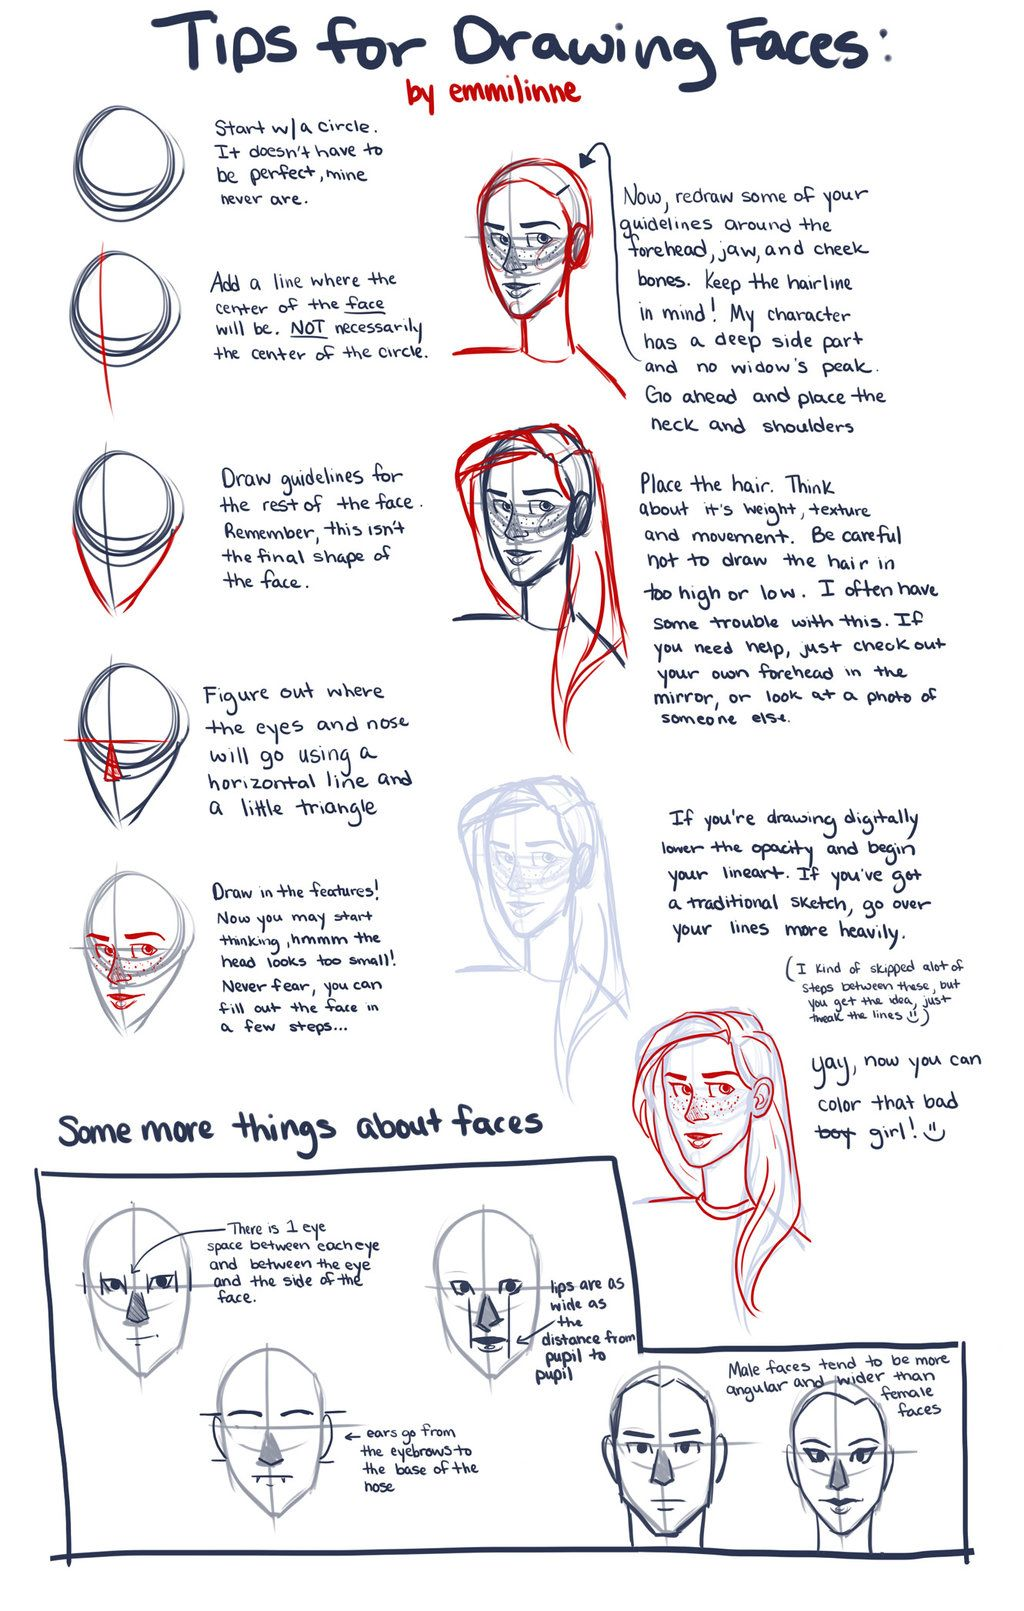 Tips for Drawing Faces by emmilinne on deviantART